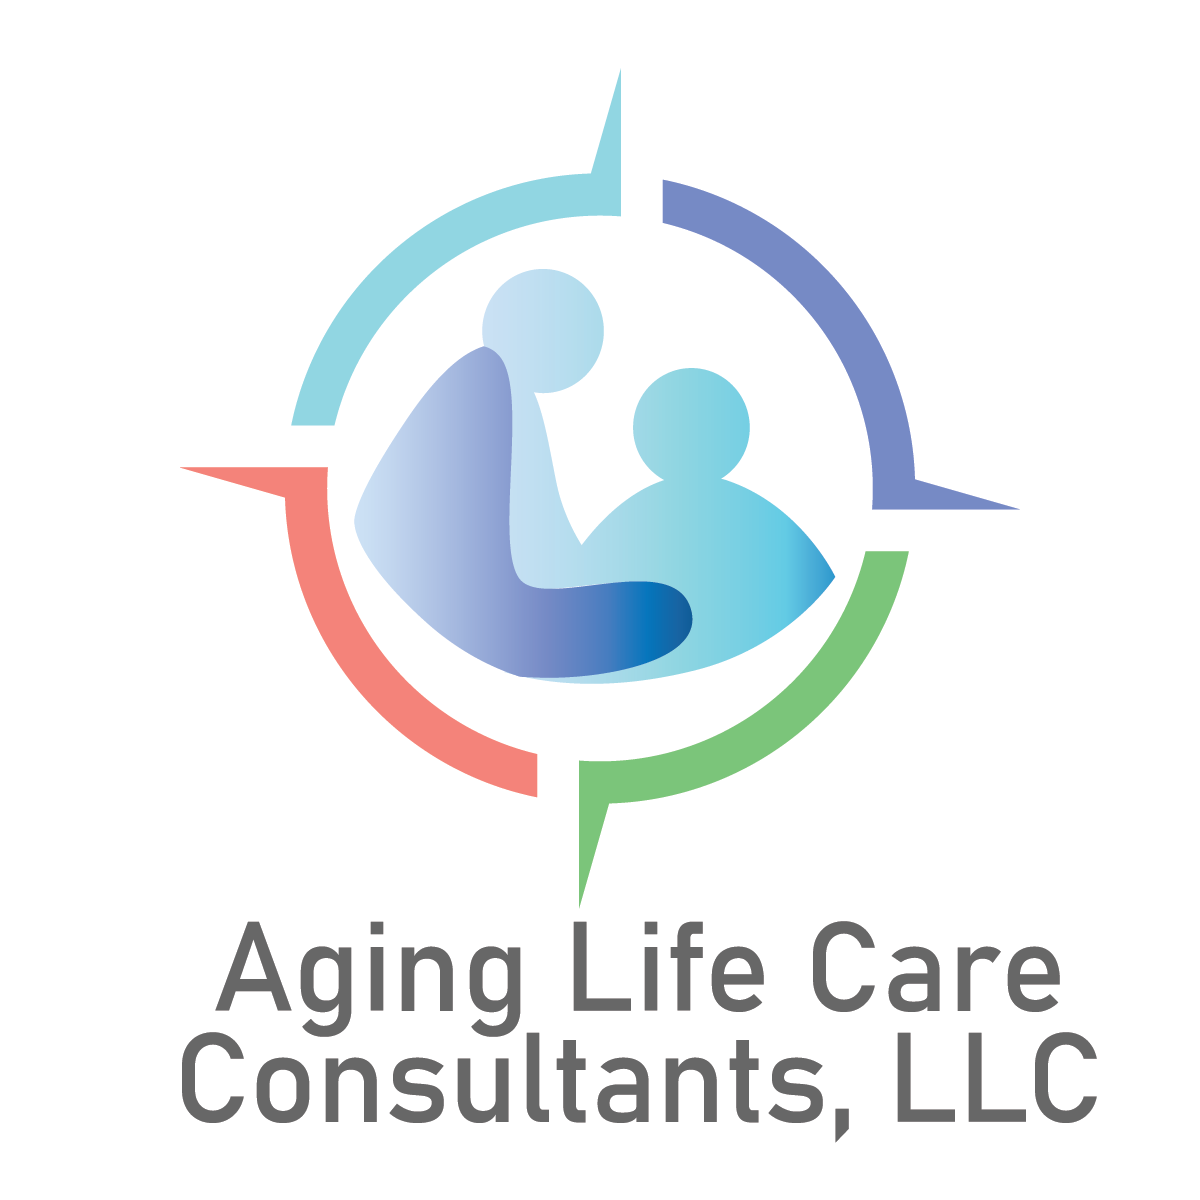 Aging Life Care Consultants